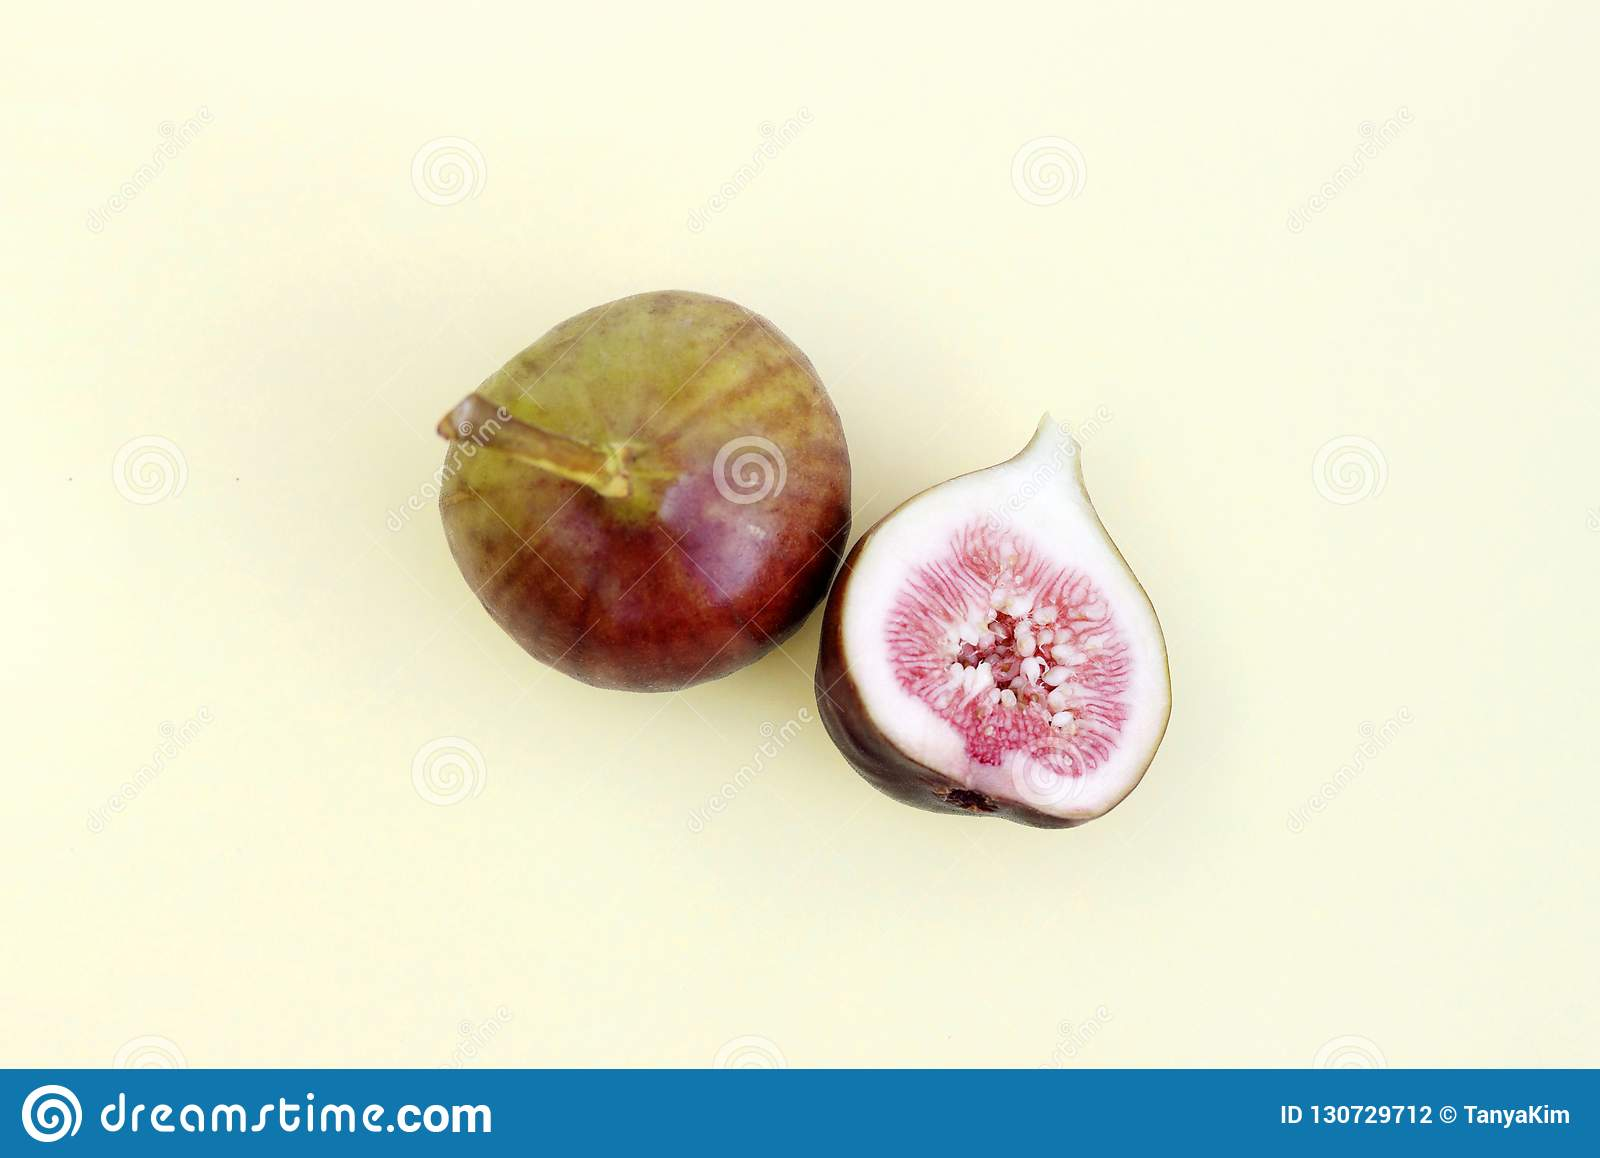 Whole and cut figs close-up, yellow background, top view